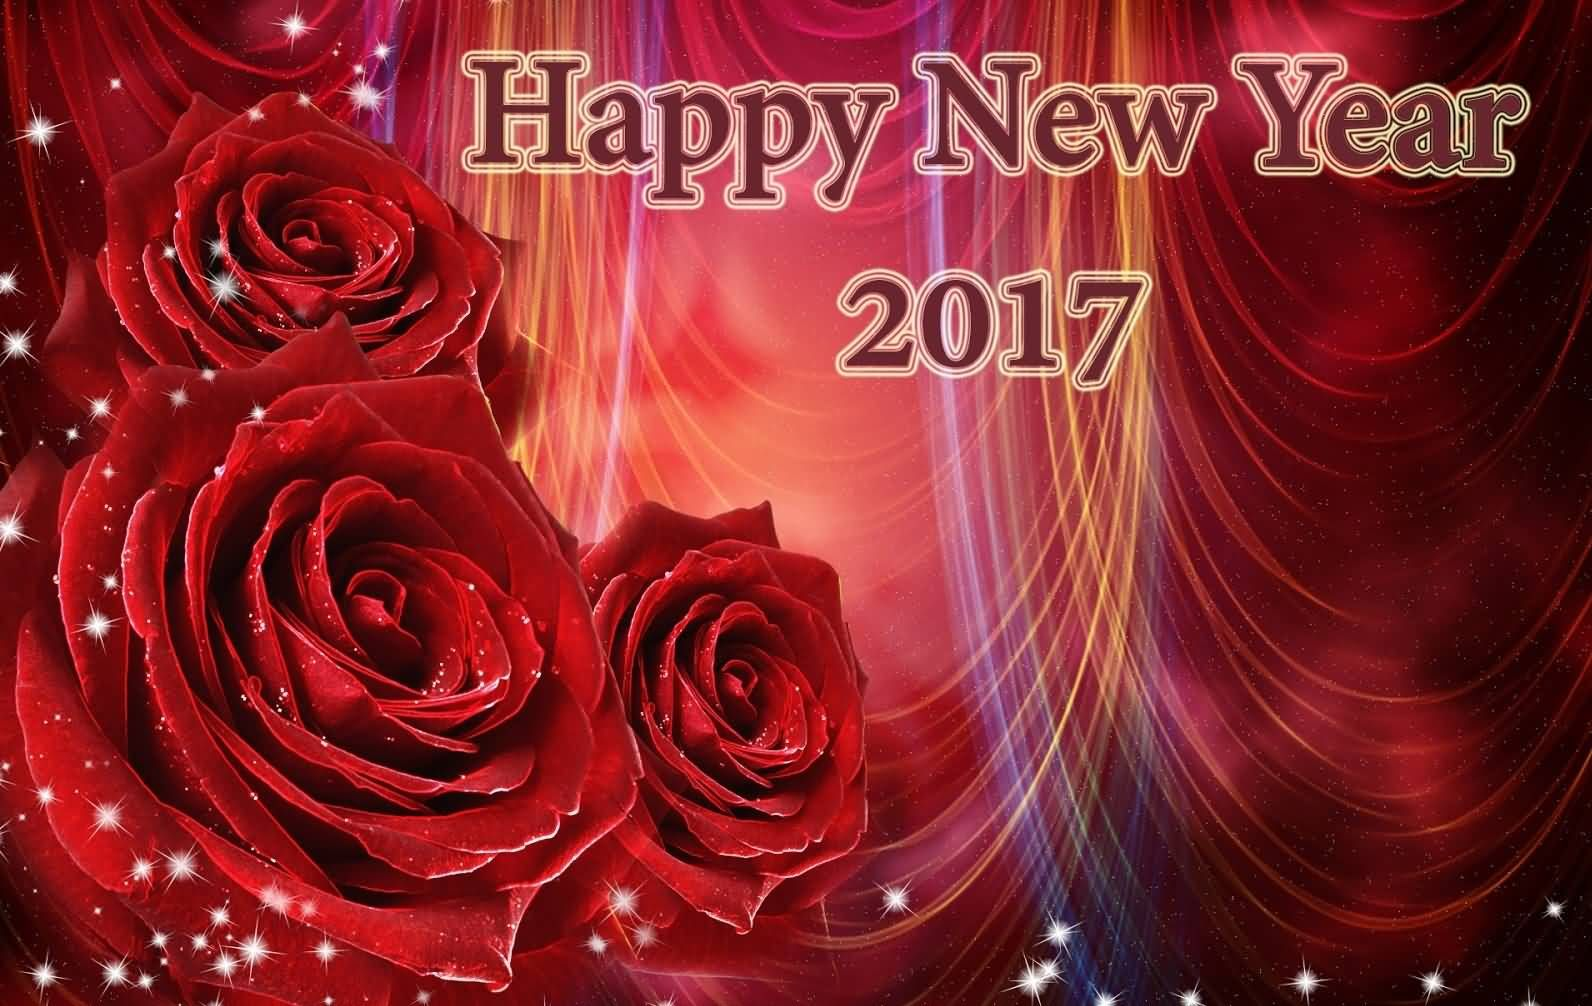 Happy New Year 2017 Rose Flowers Picture Happy New Year Fireworks Happy New Year 2017 Pictures Happy New Year Wishes